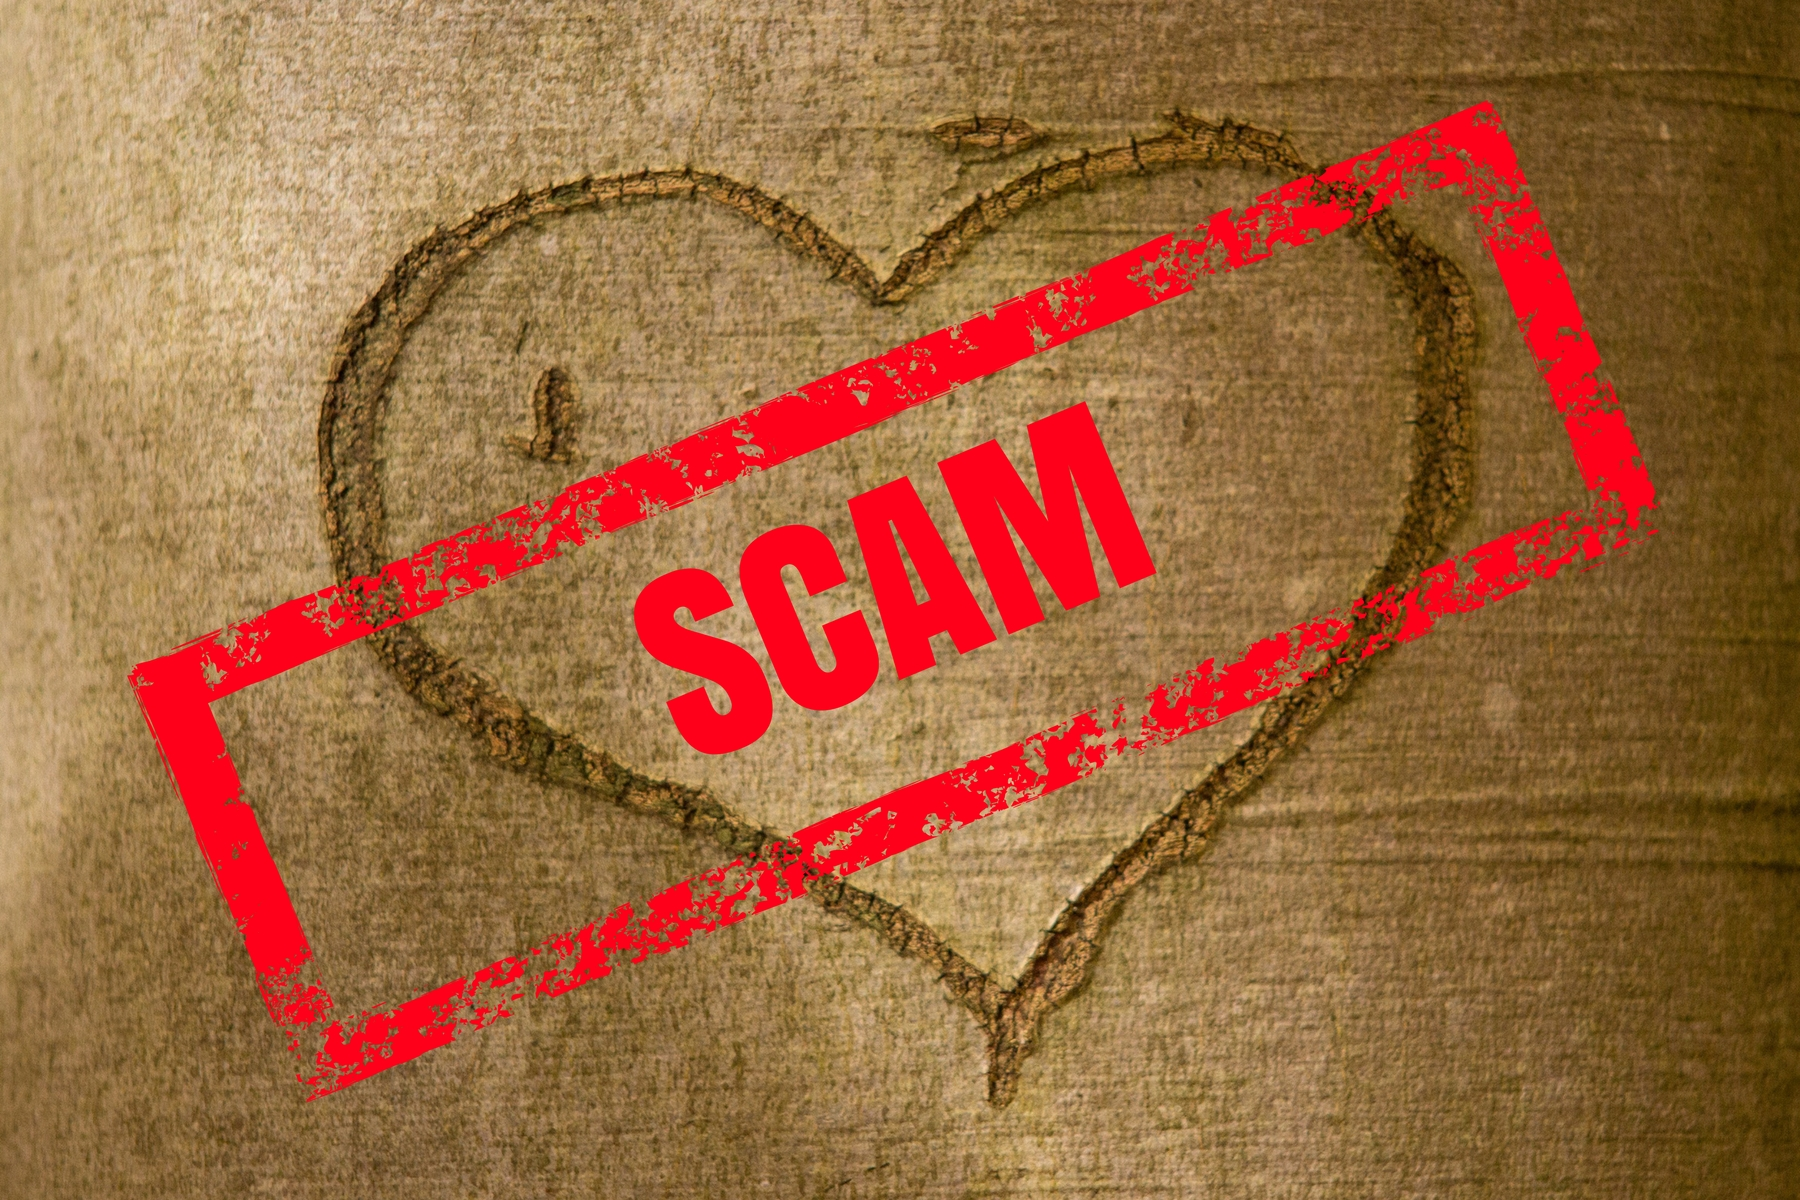 Online military dating scams